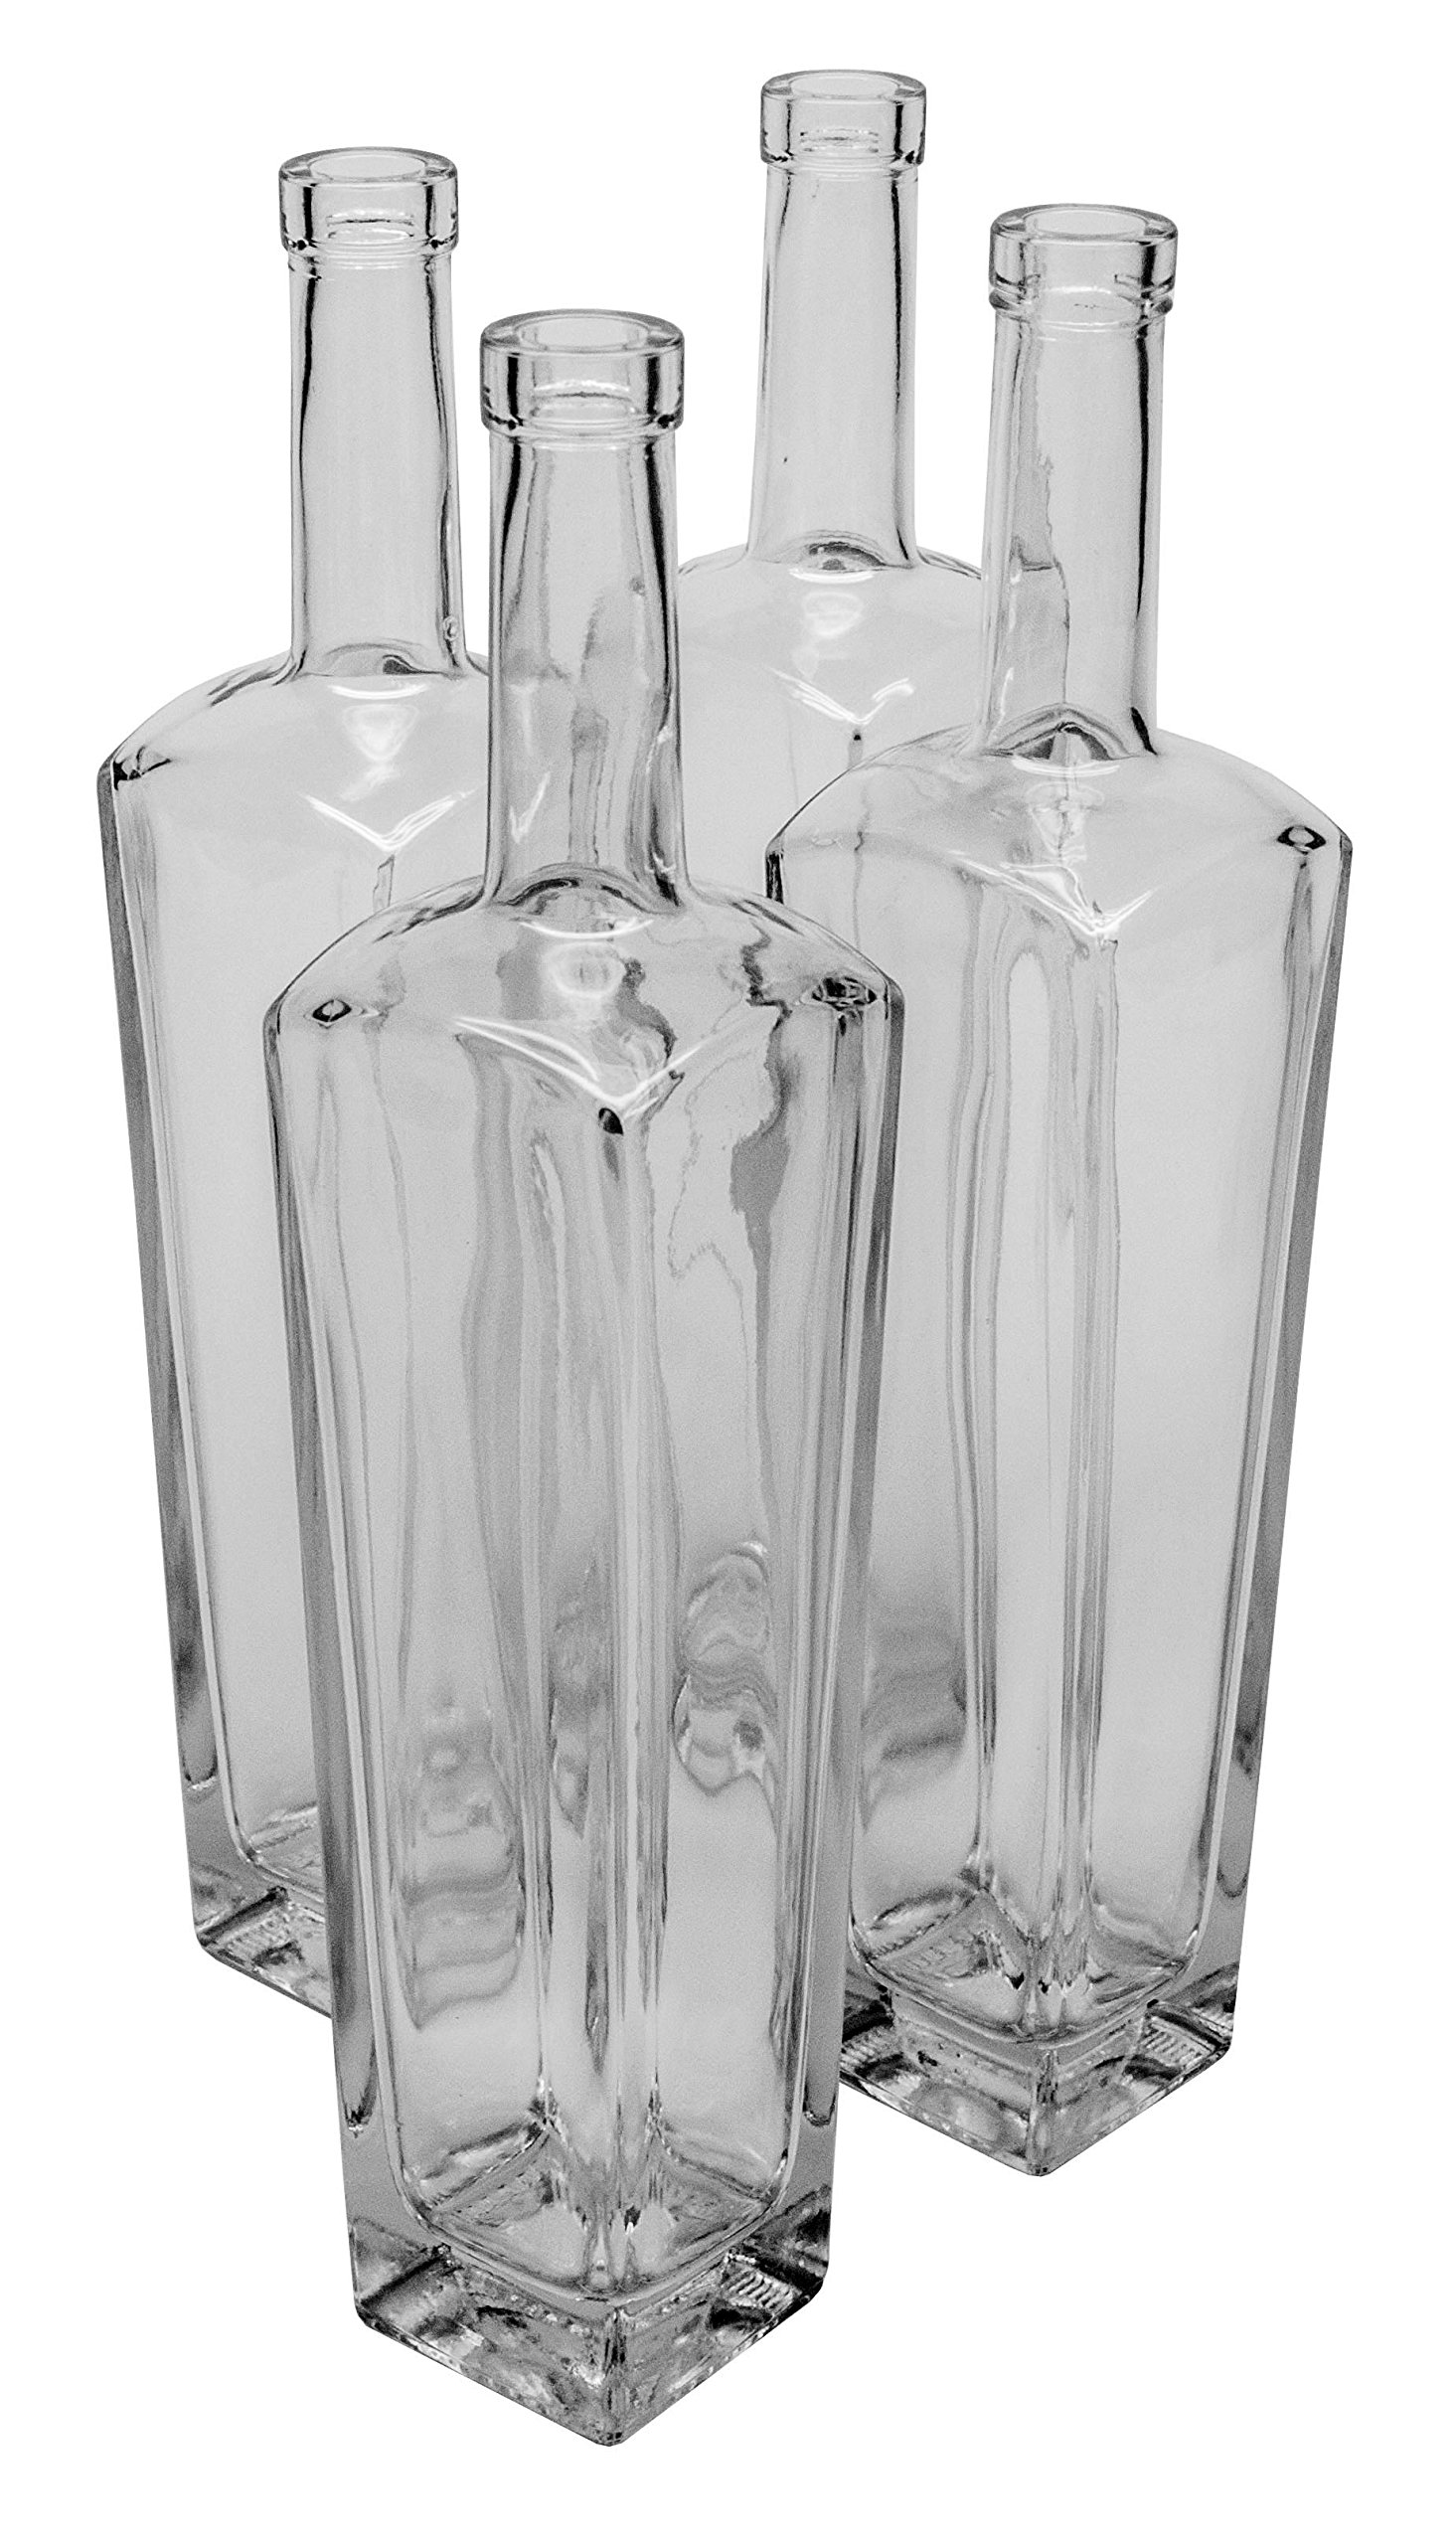 North Mountain Supply 750ml New Yorker Clear Glass Wine/Spirits Bottle Bar Top Finish - Case of 4